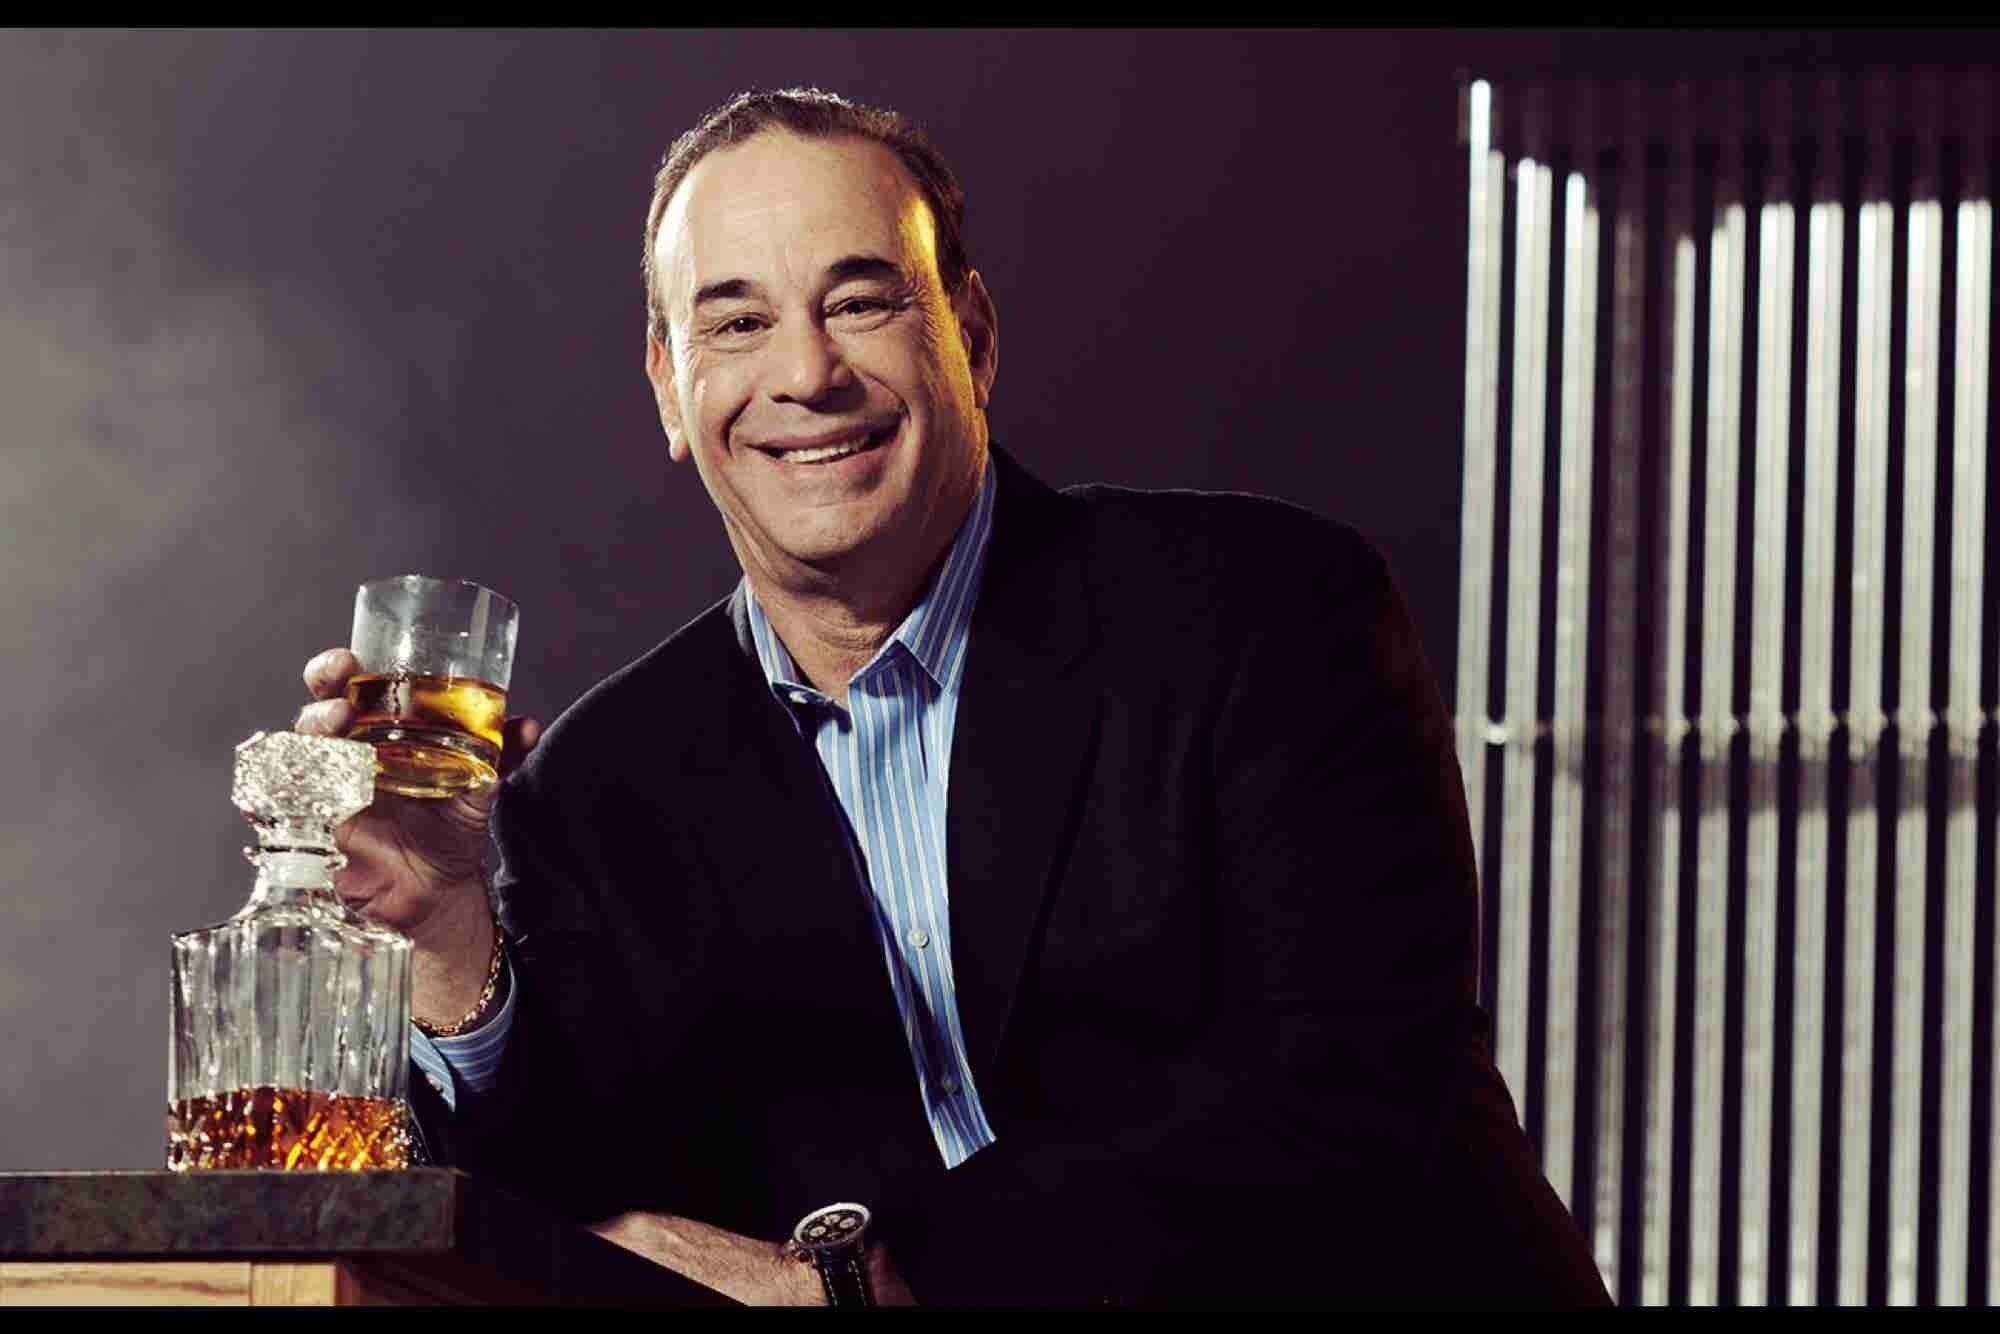 Bar Rescue's Jon Taffer: This Is the Key to Authenticity